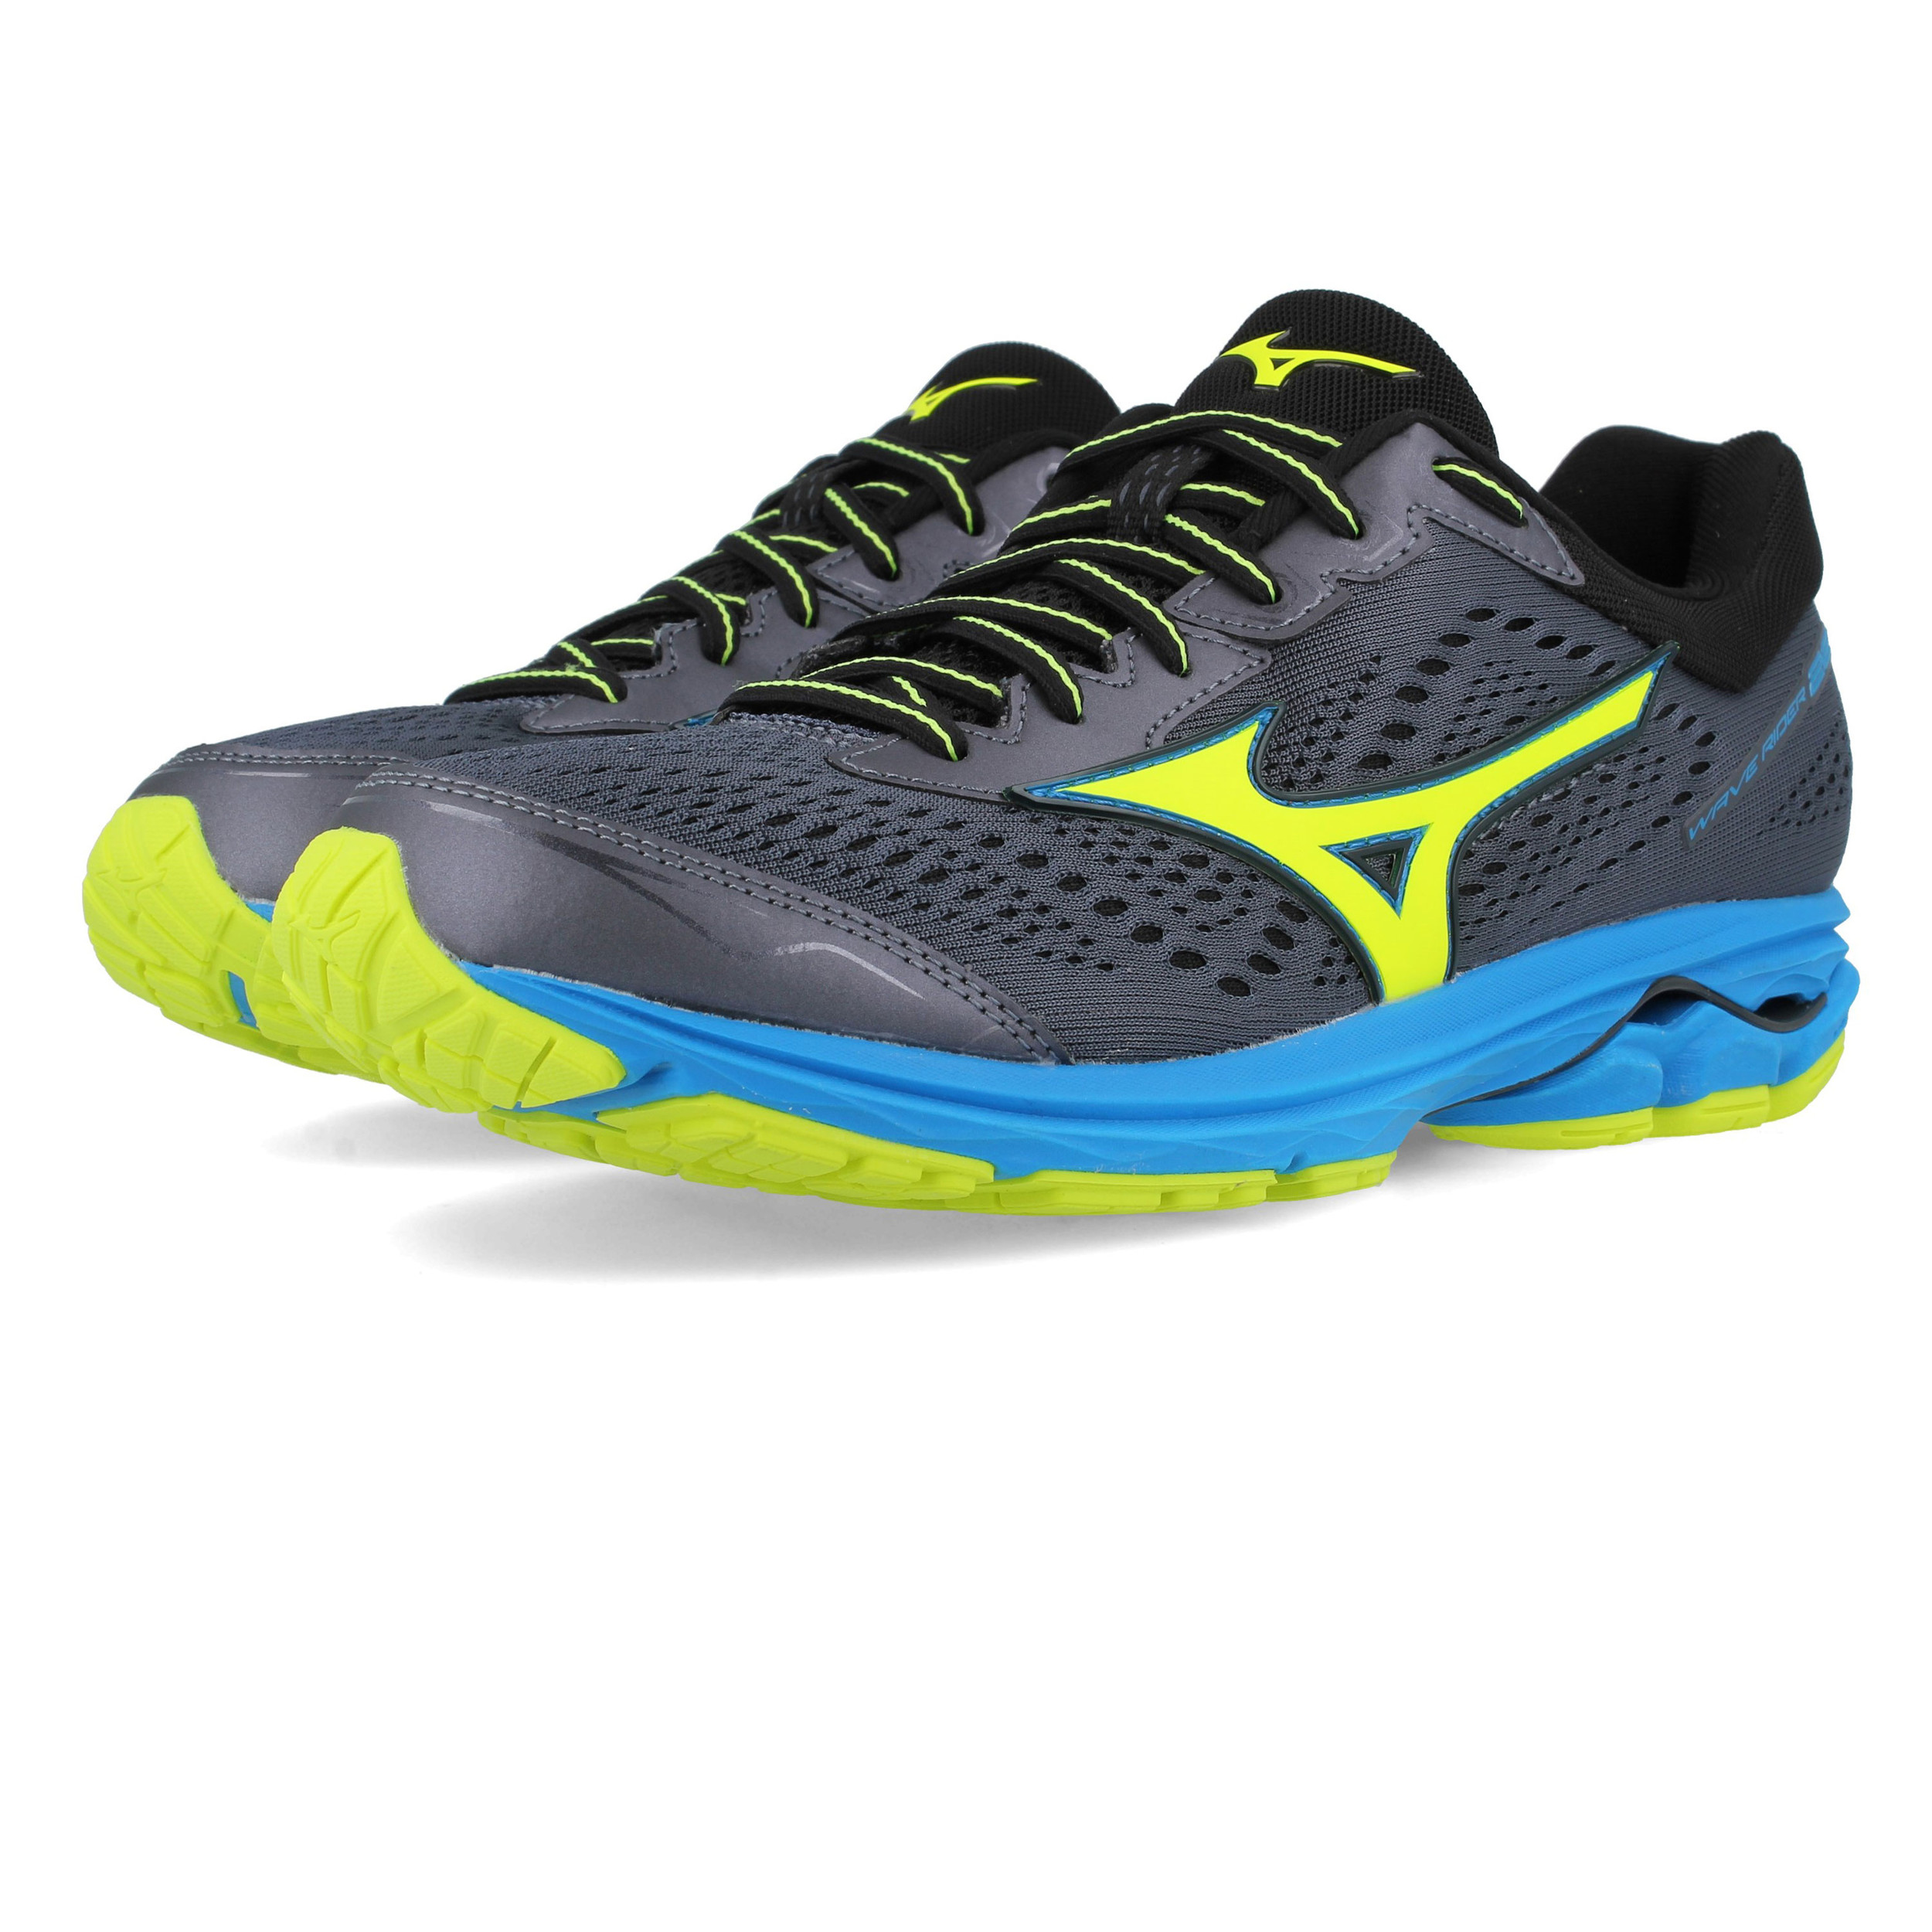 best website 9ec22 6c7be Details about Mizuno Mens Wave Rider 22 Running Shoes Trainers Sneakers  Grey Sports Breathable